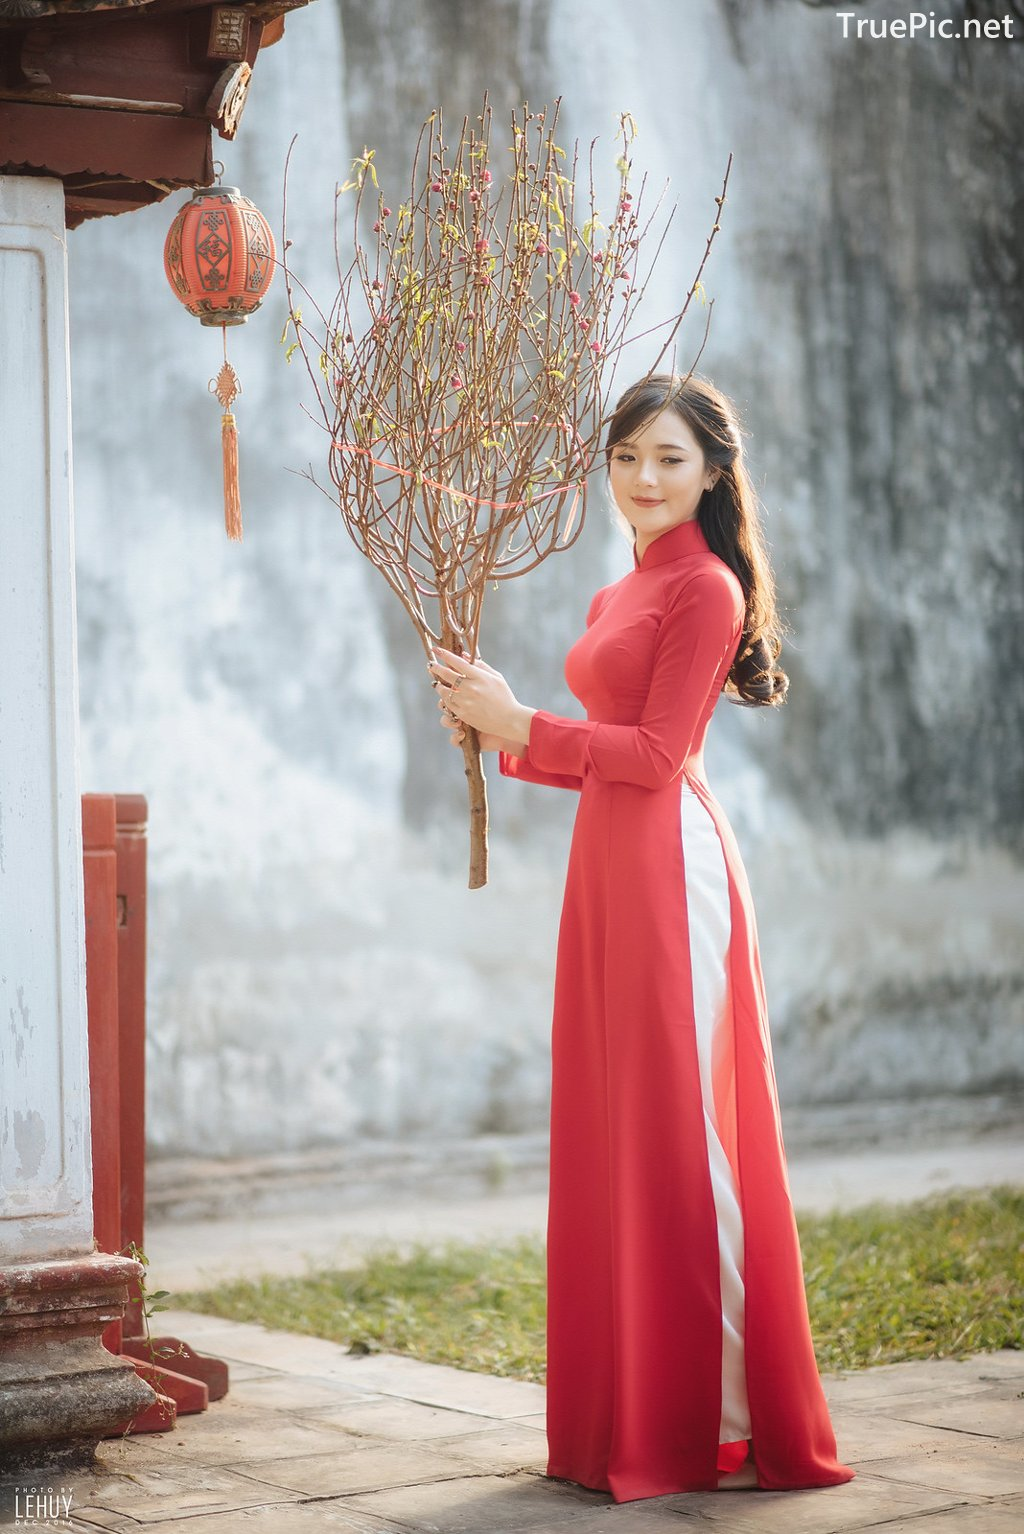 Image-Vietnamese-Model-Beautiful-Girl-and-Ao-Dai-Red-Vietnamese-Traditional-Dress-TruePic.net- Picture-10